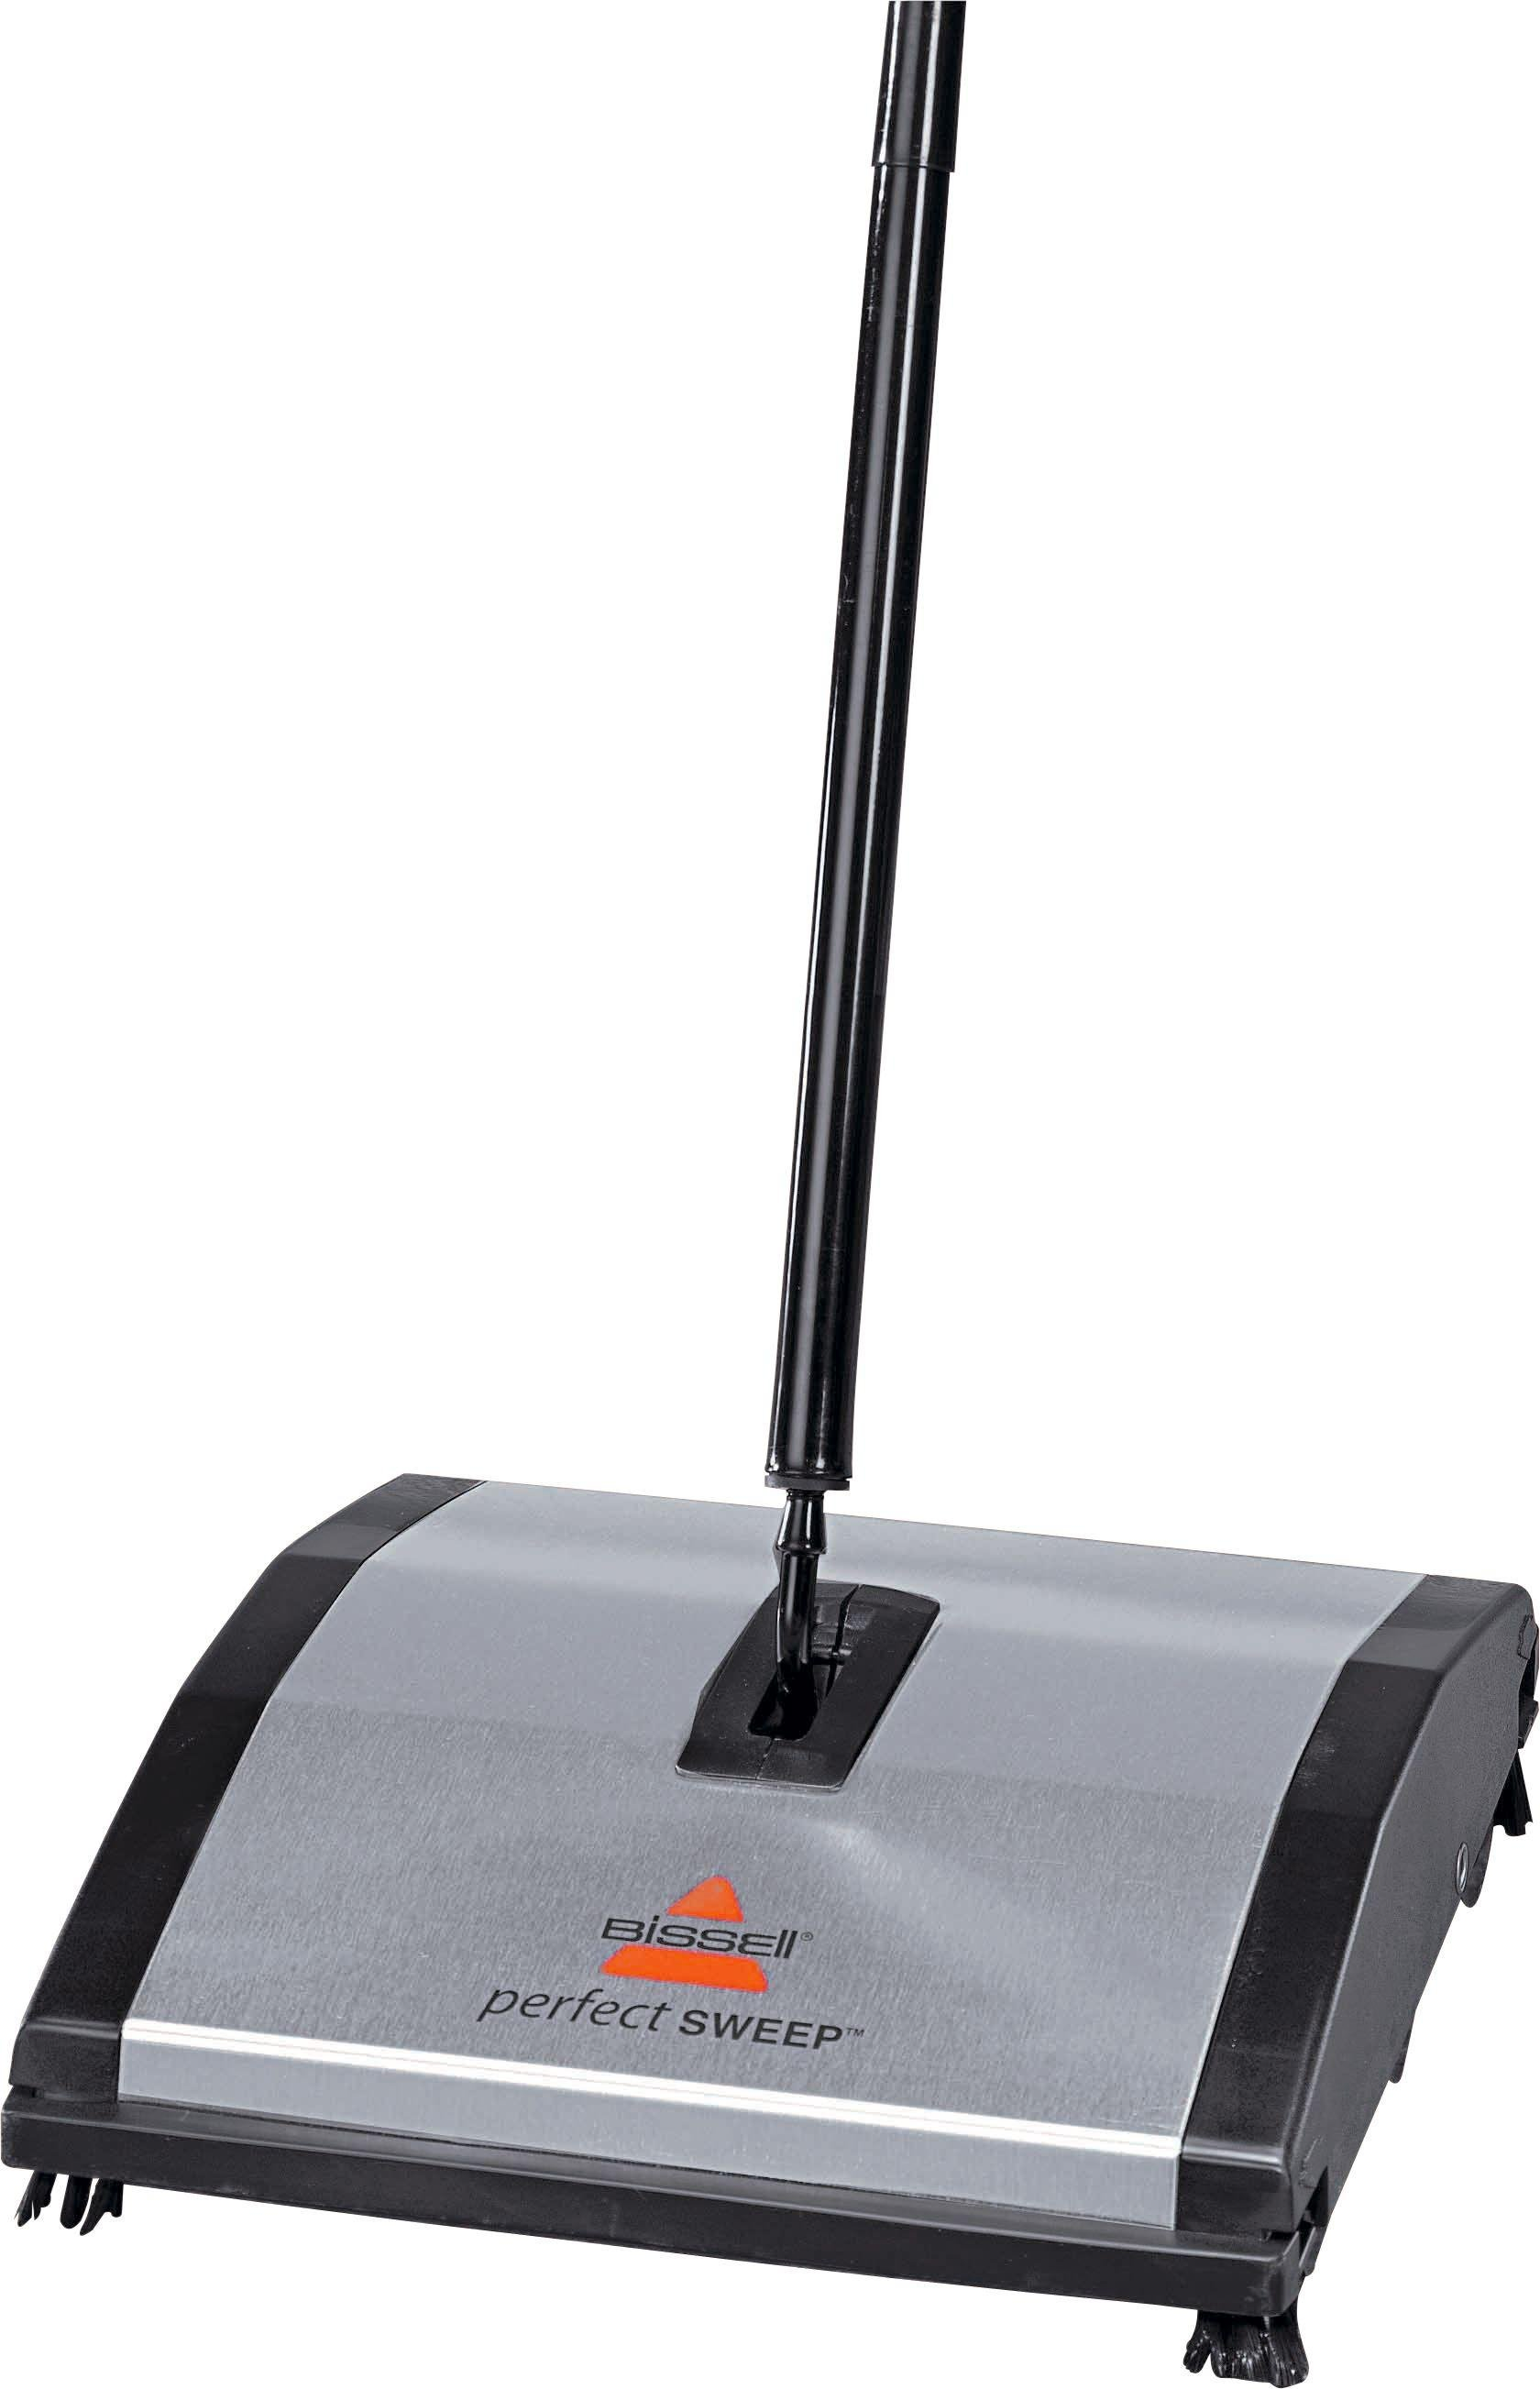 Bissell P3840 Perfect Sweep Floor Sweeper